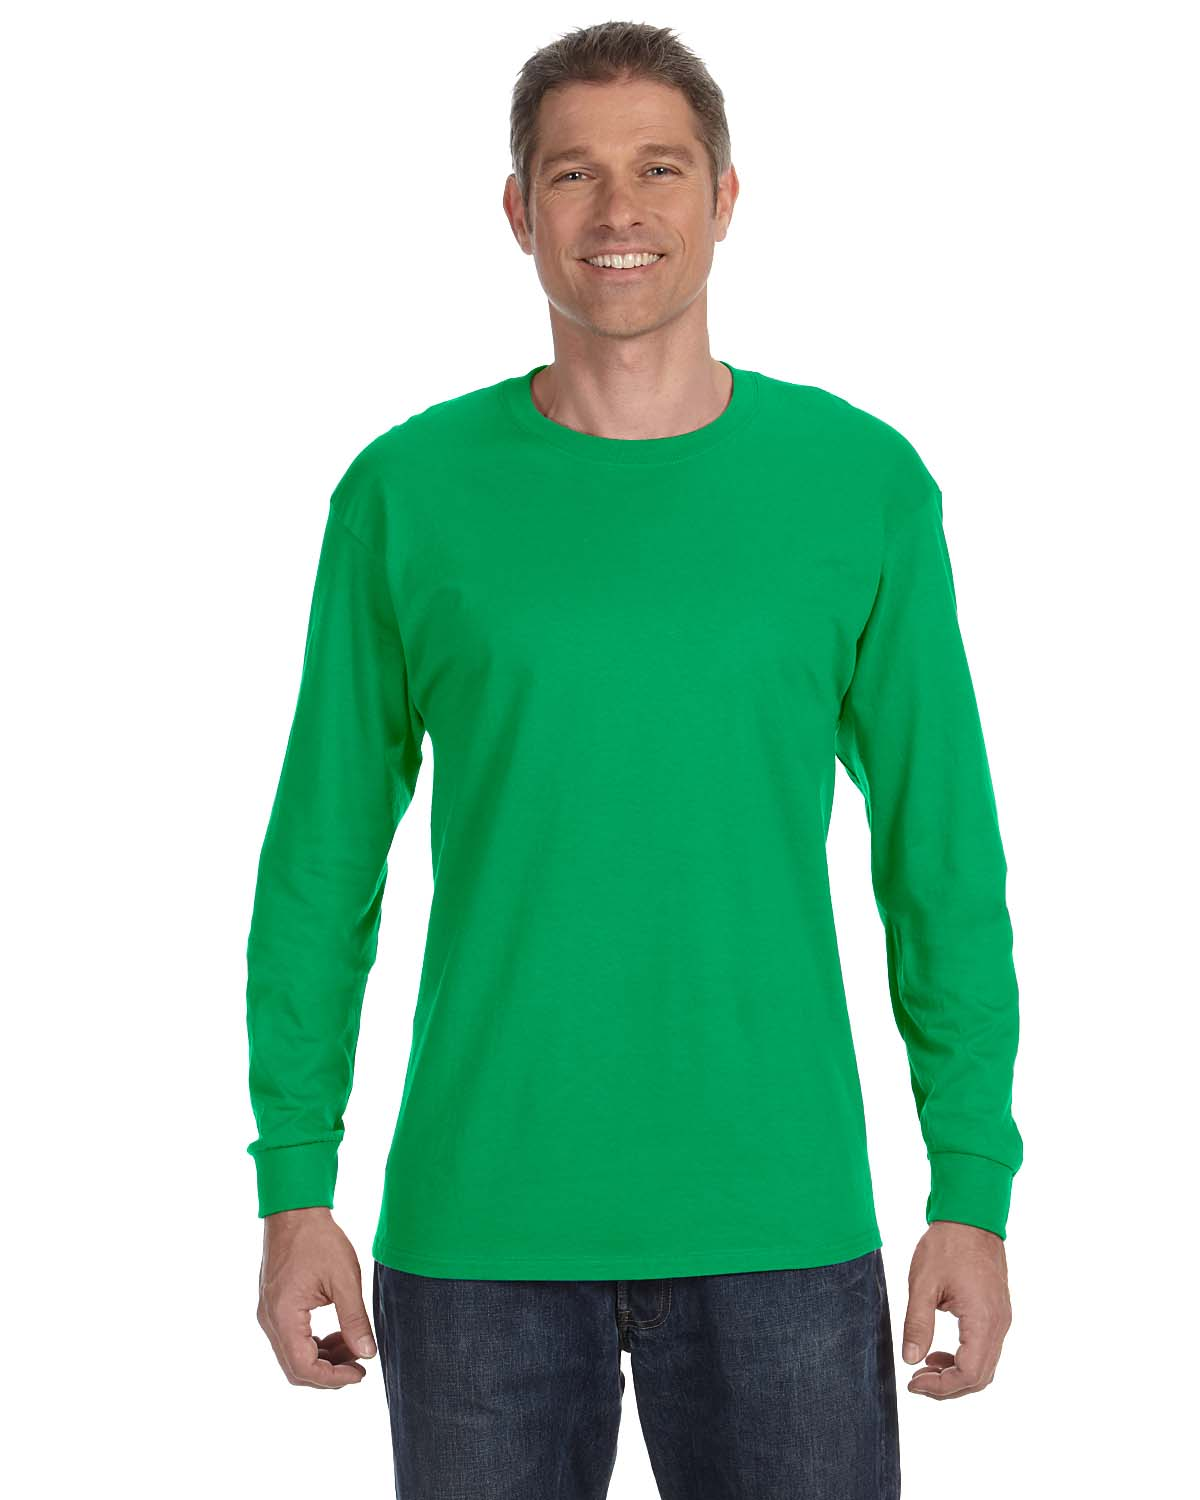 3510d9e76 Gildan Heavy Cotton™ 5.3 Oz. Long-Sleeve T-Shirt | Long Sleeve ...